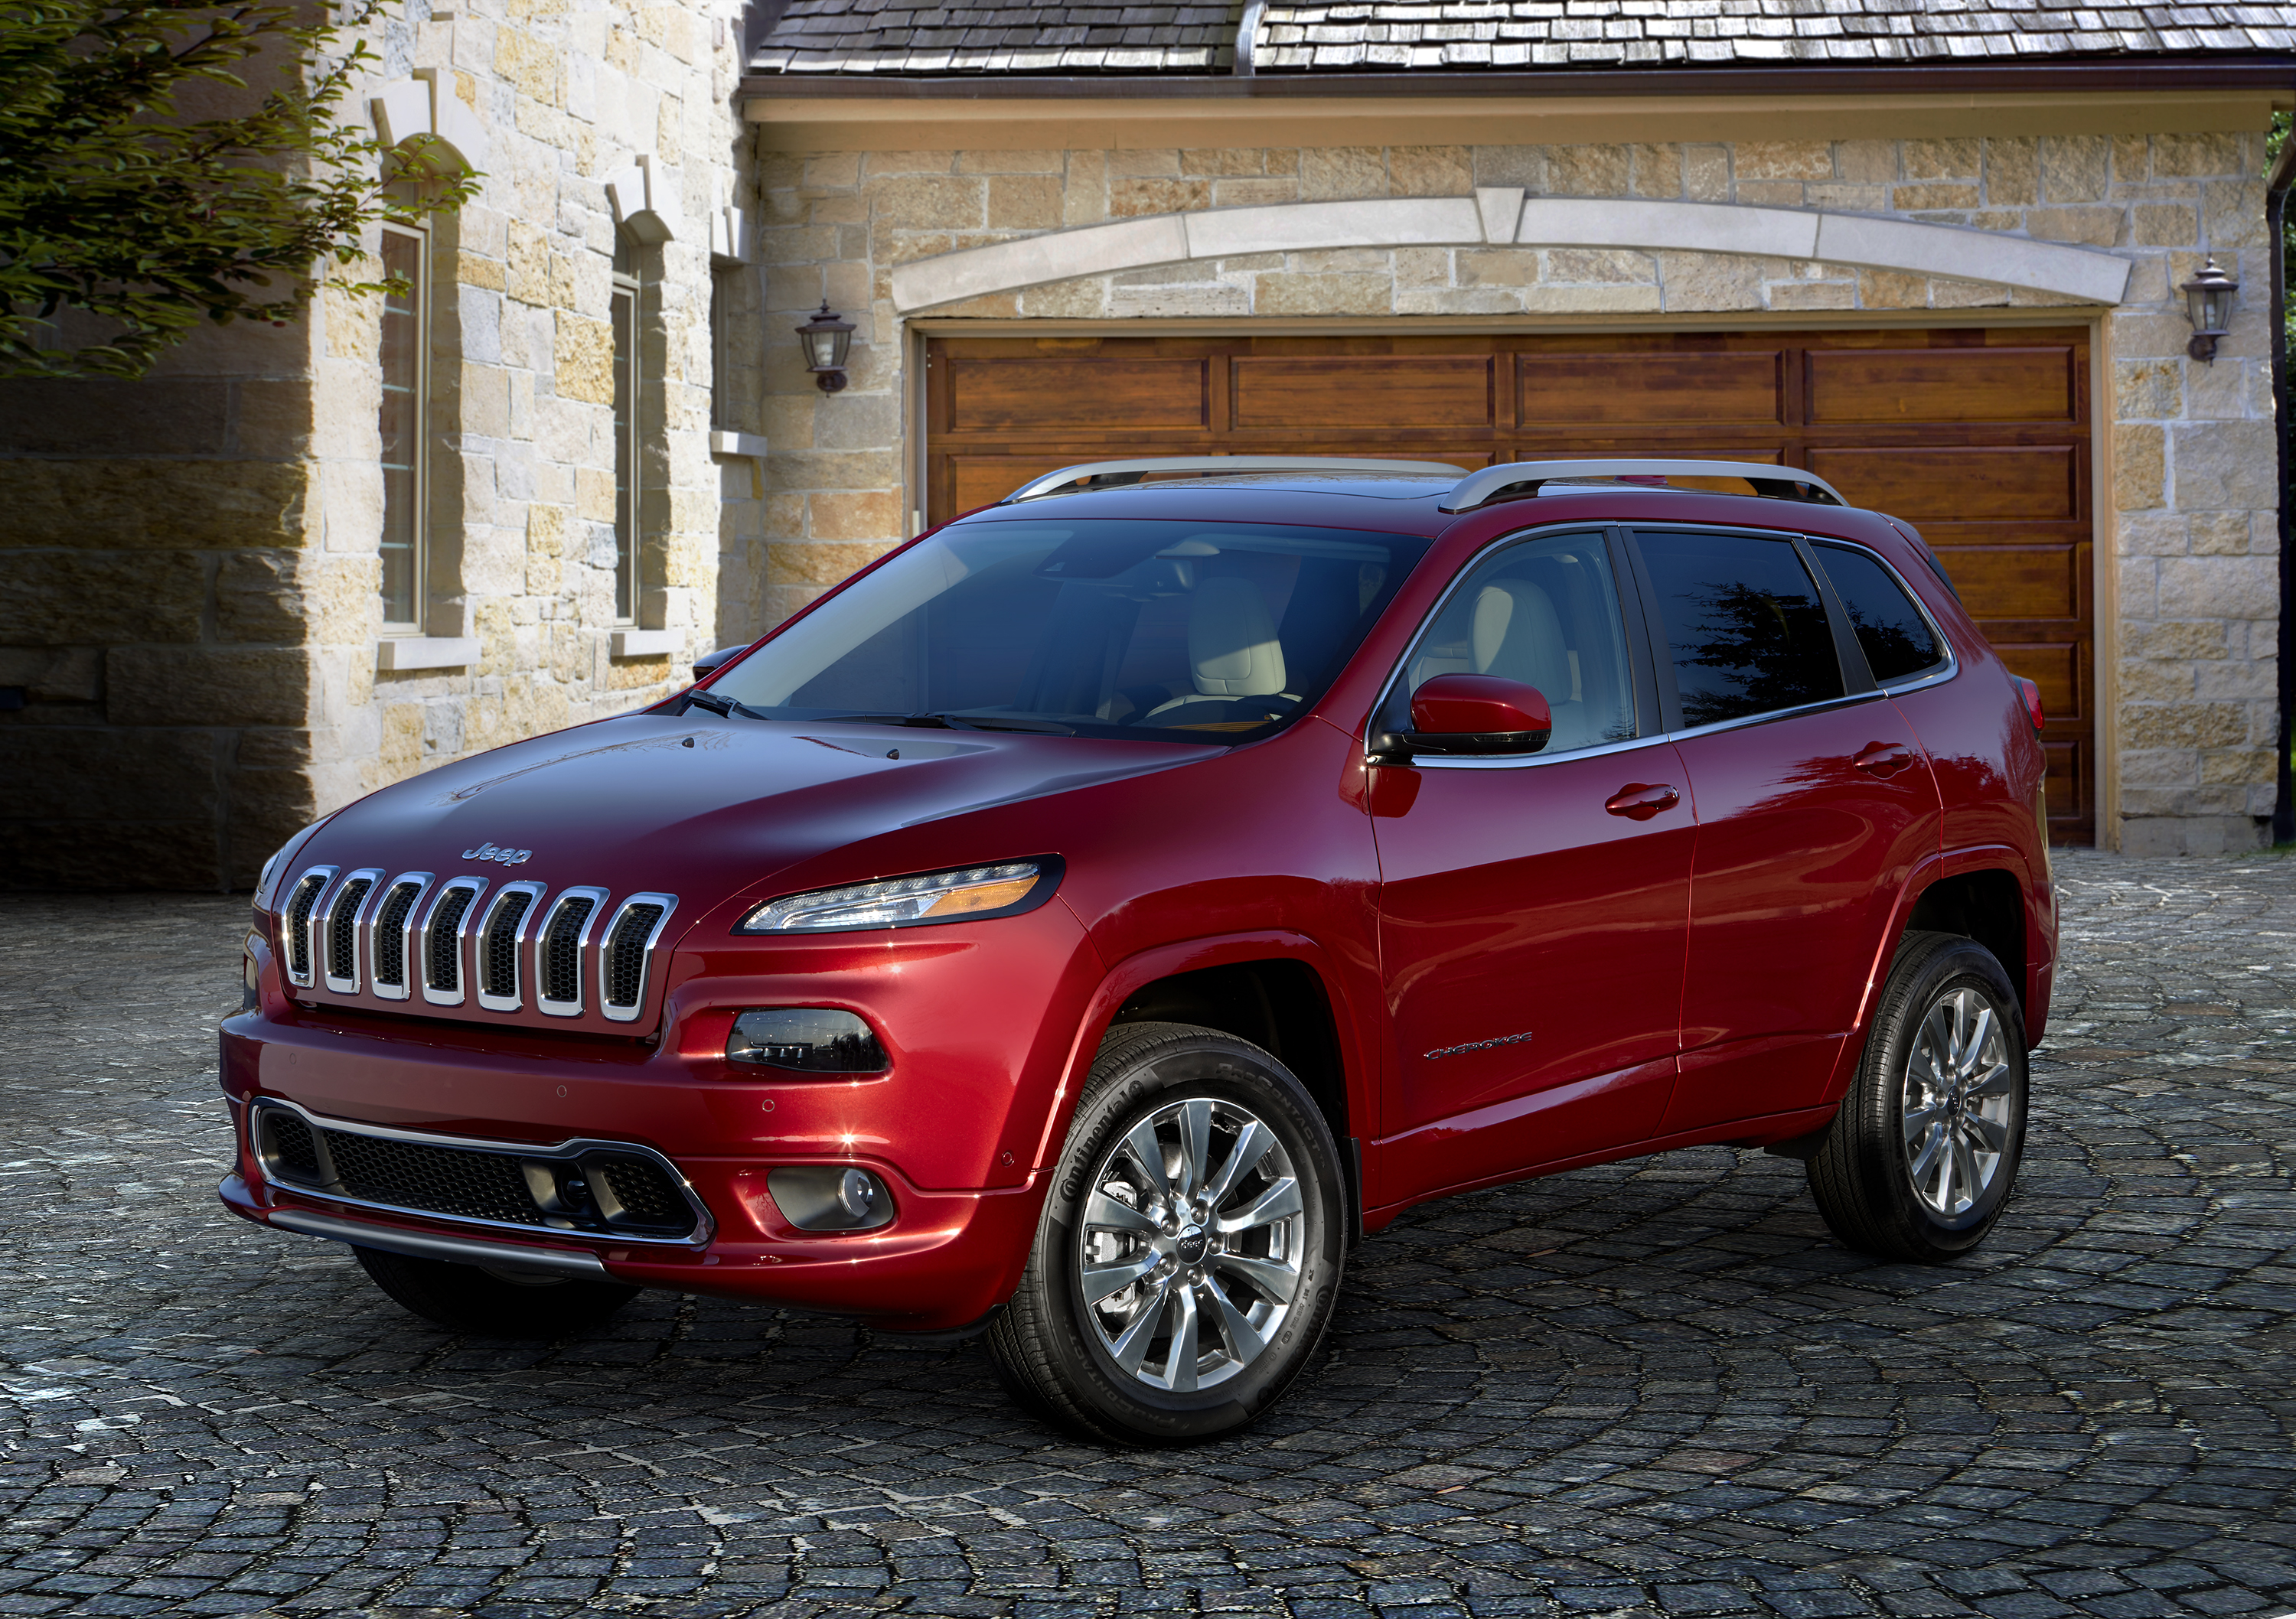 Jeep Cherokee 'Overland' version announced